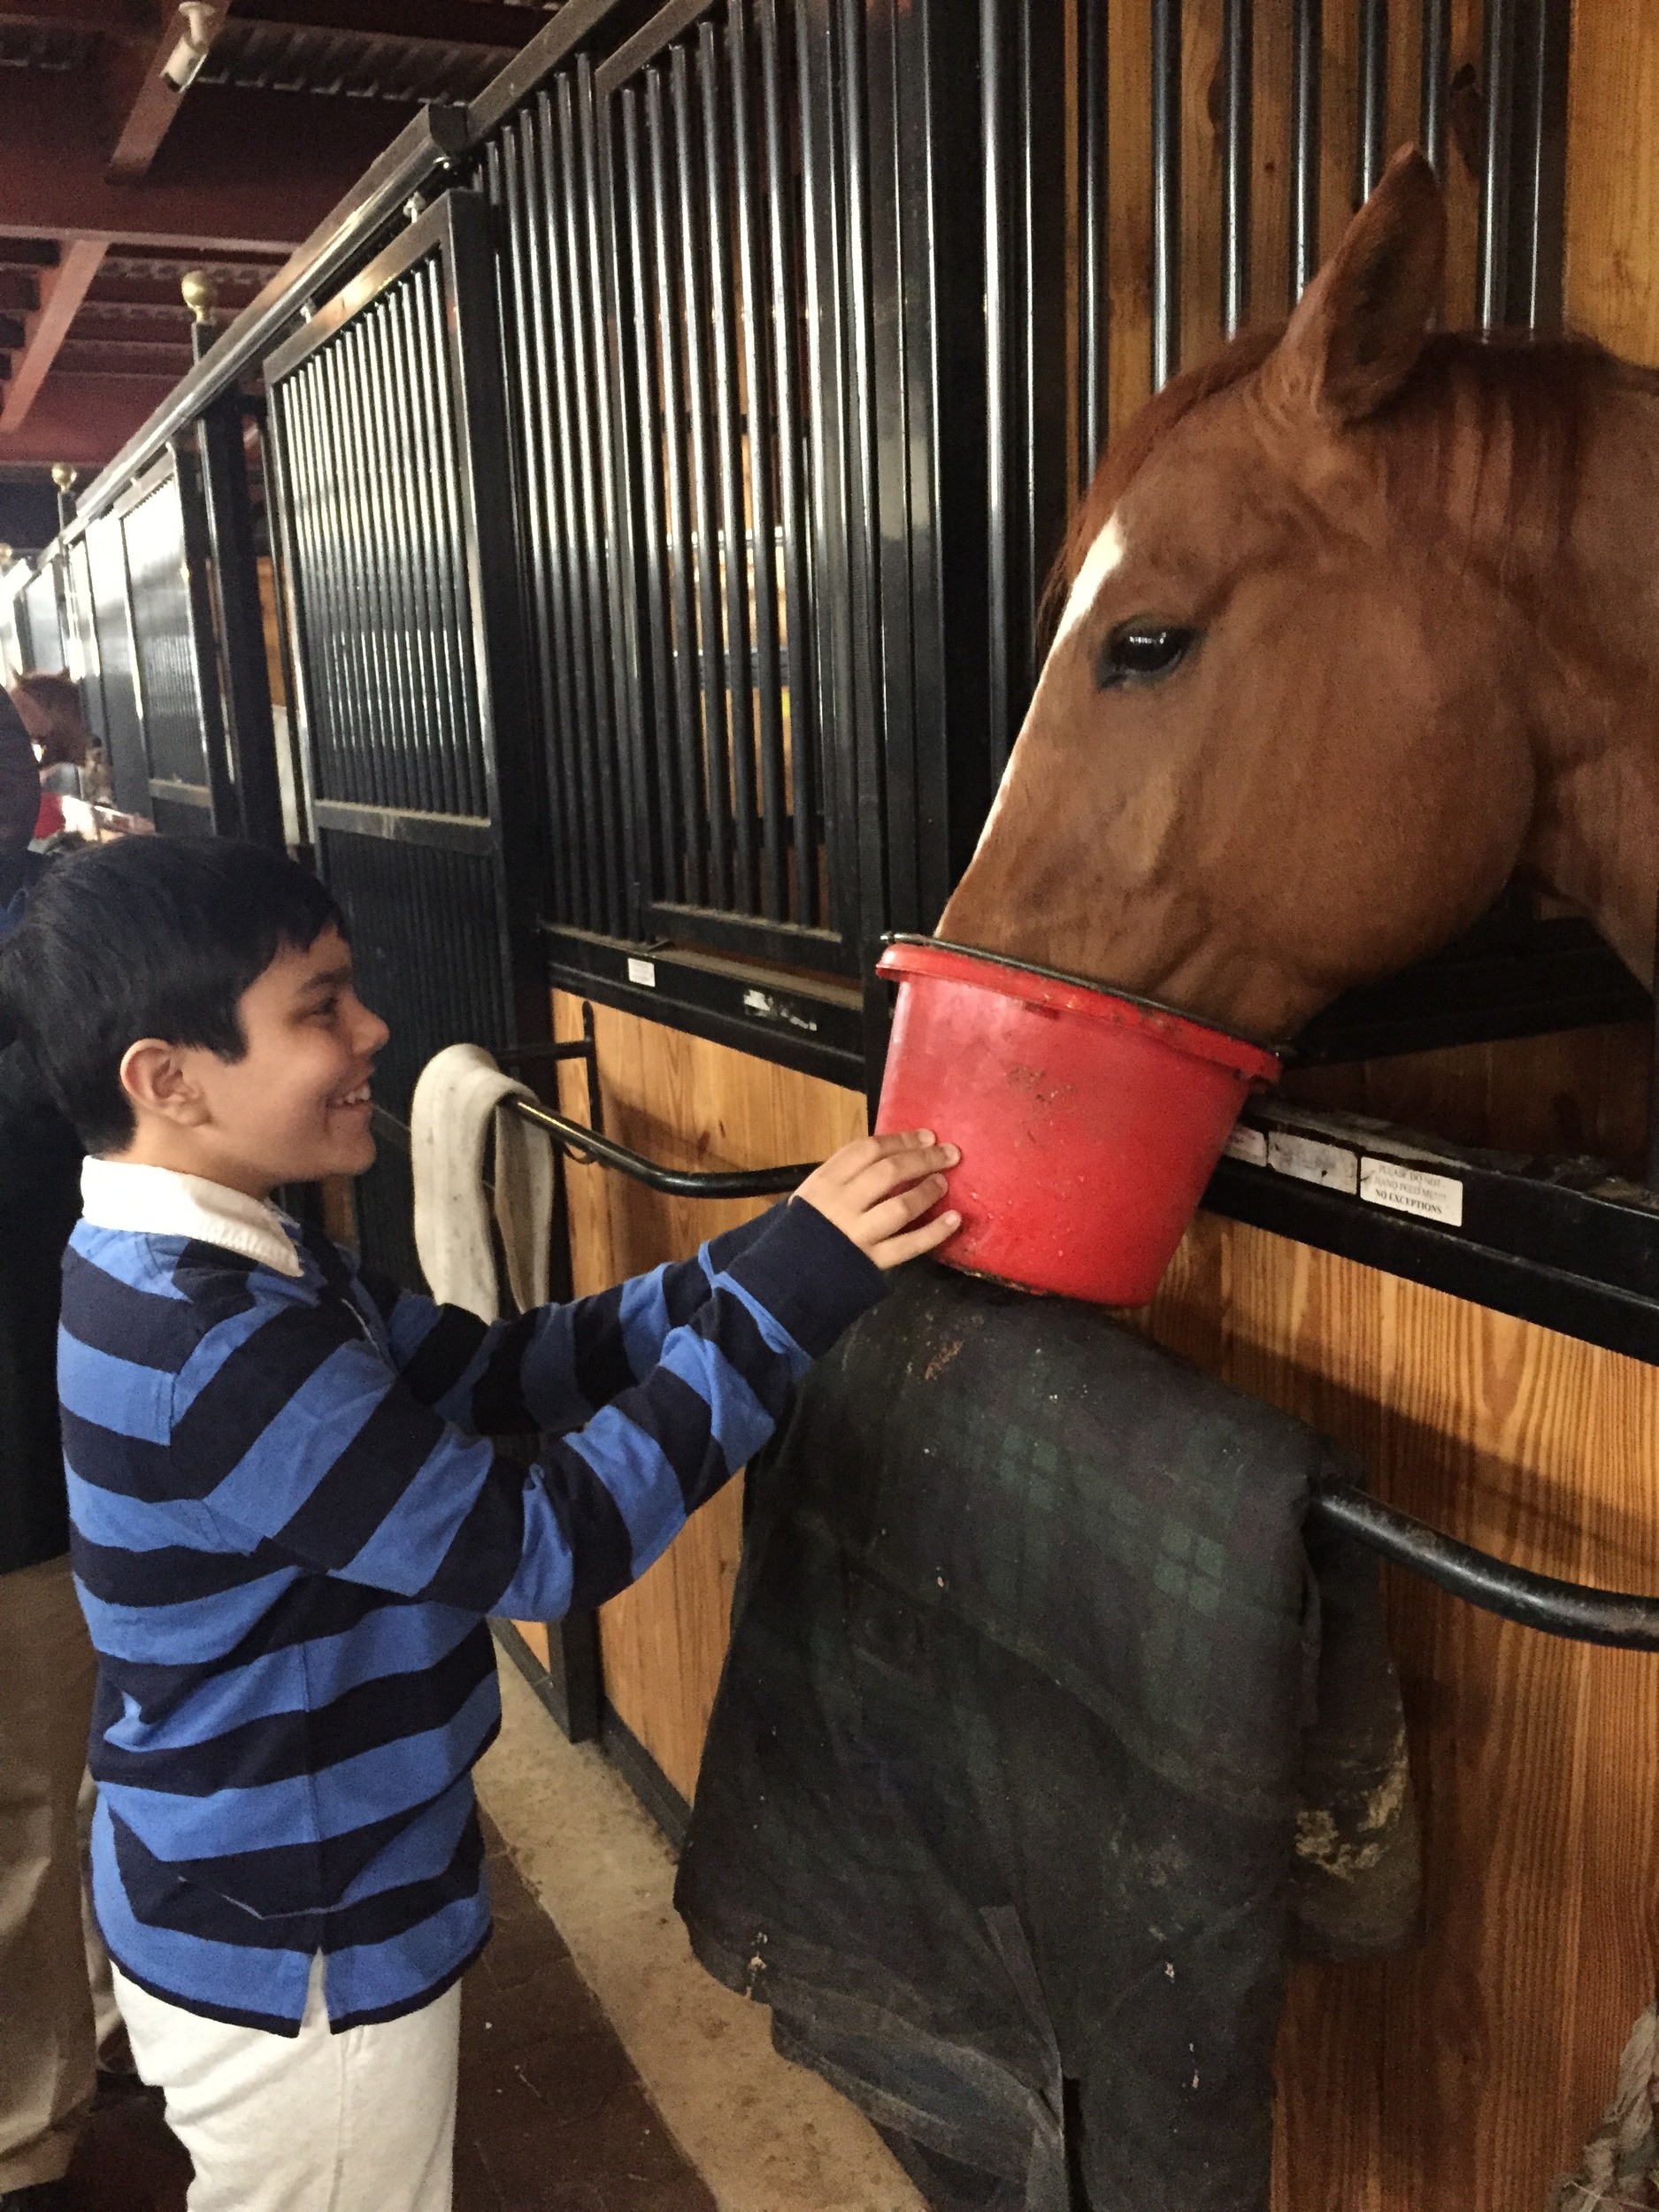 A student from the Gersh Academy fed a horse at the center as part of a therapeutic program for people on the autism spectrum.